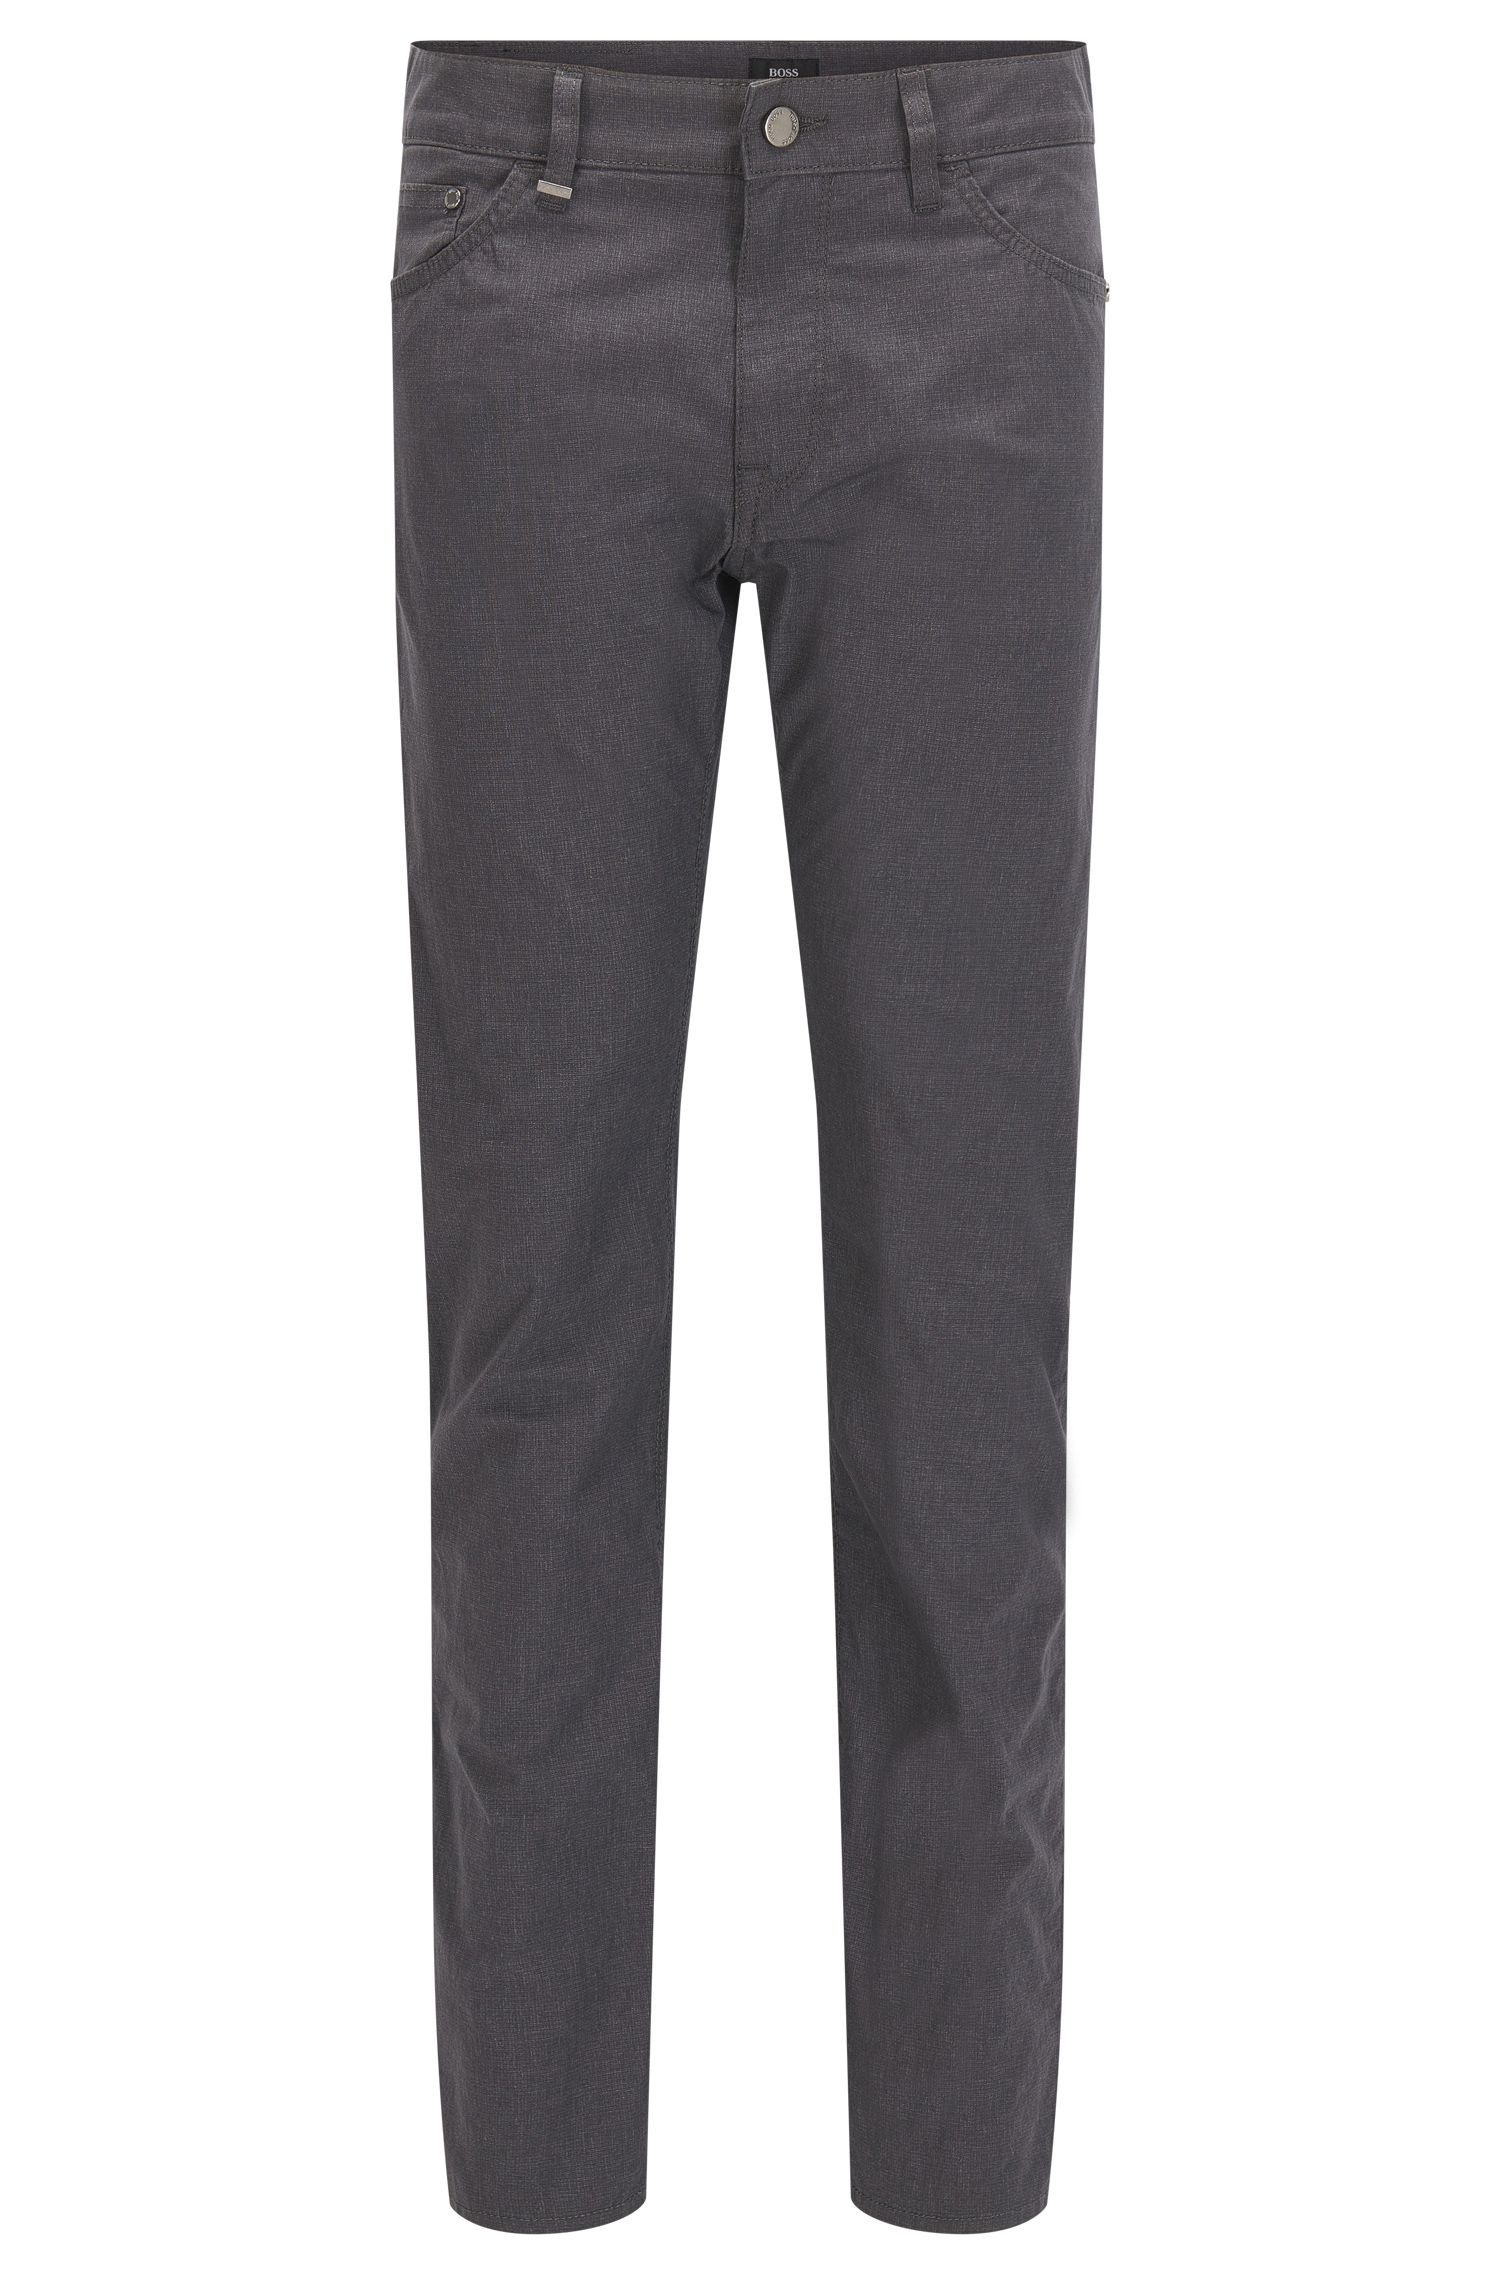 9 oz Basketweave Italian Stretch Cotton Pants, Regular Fit | Maine